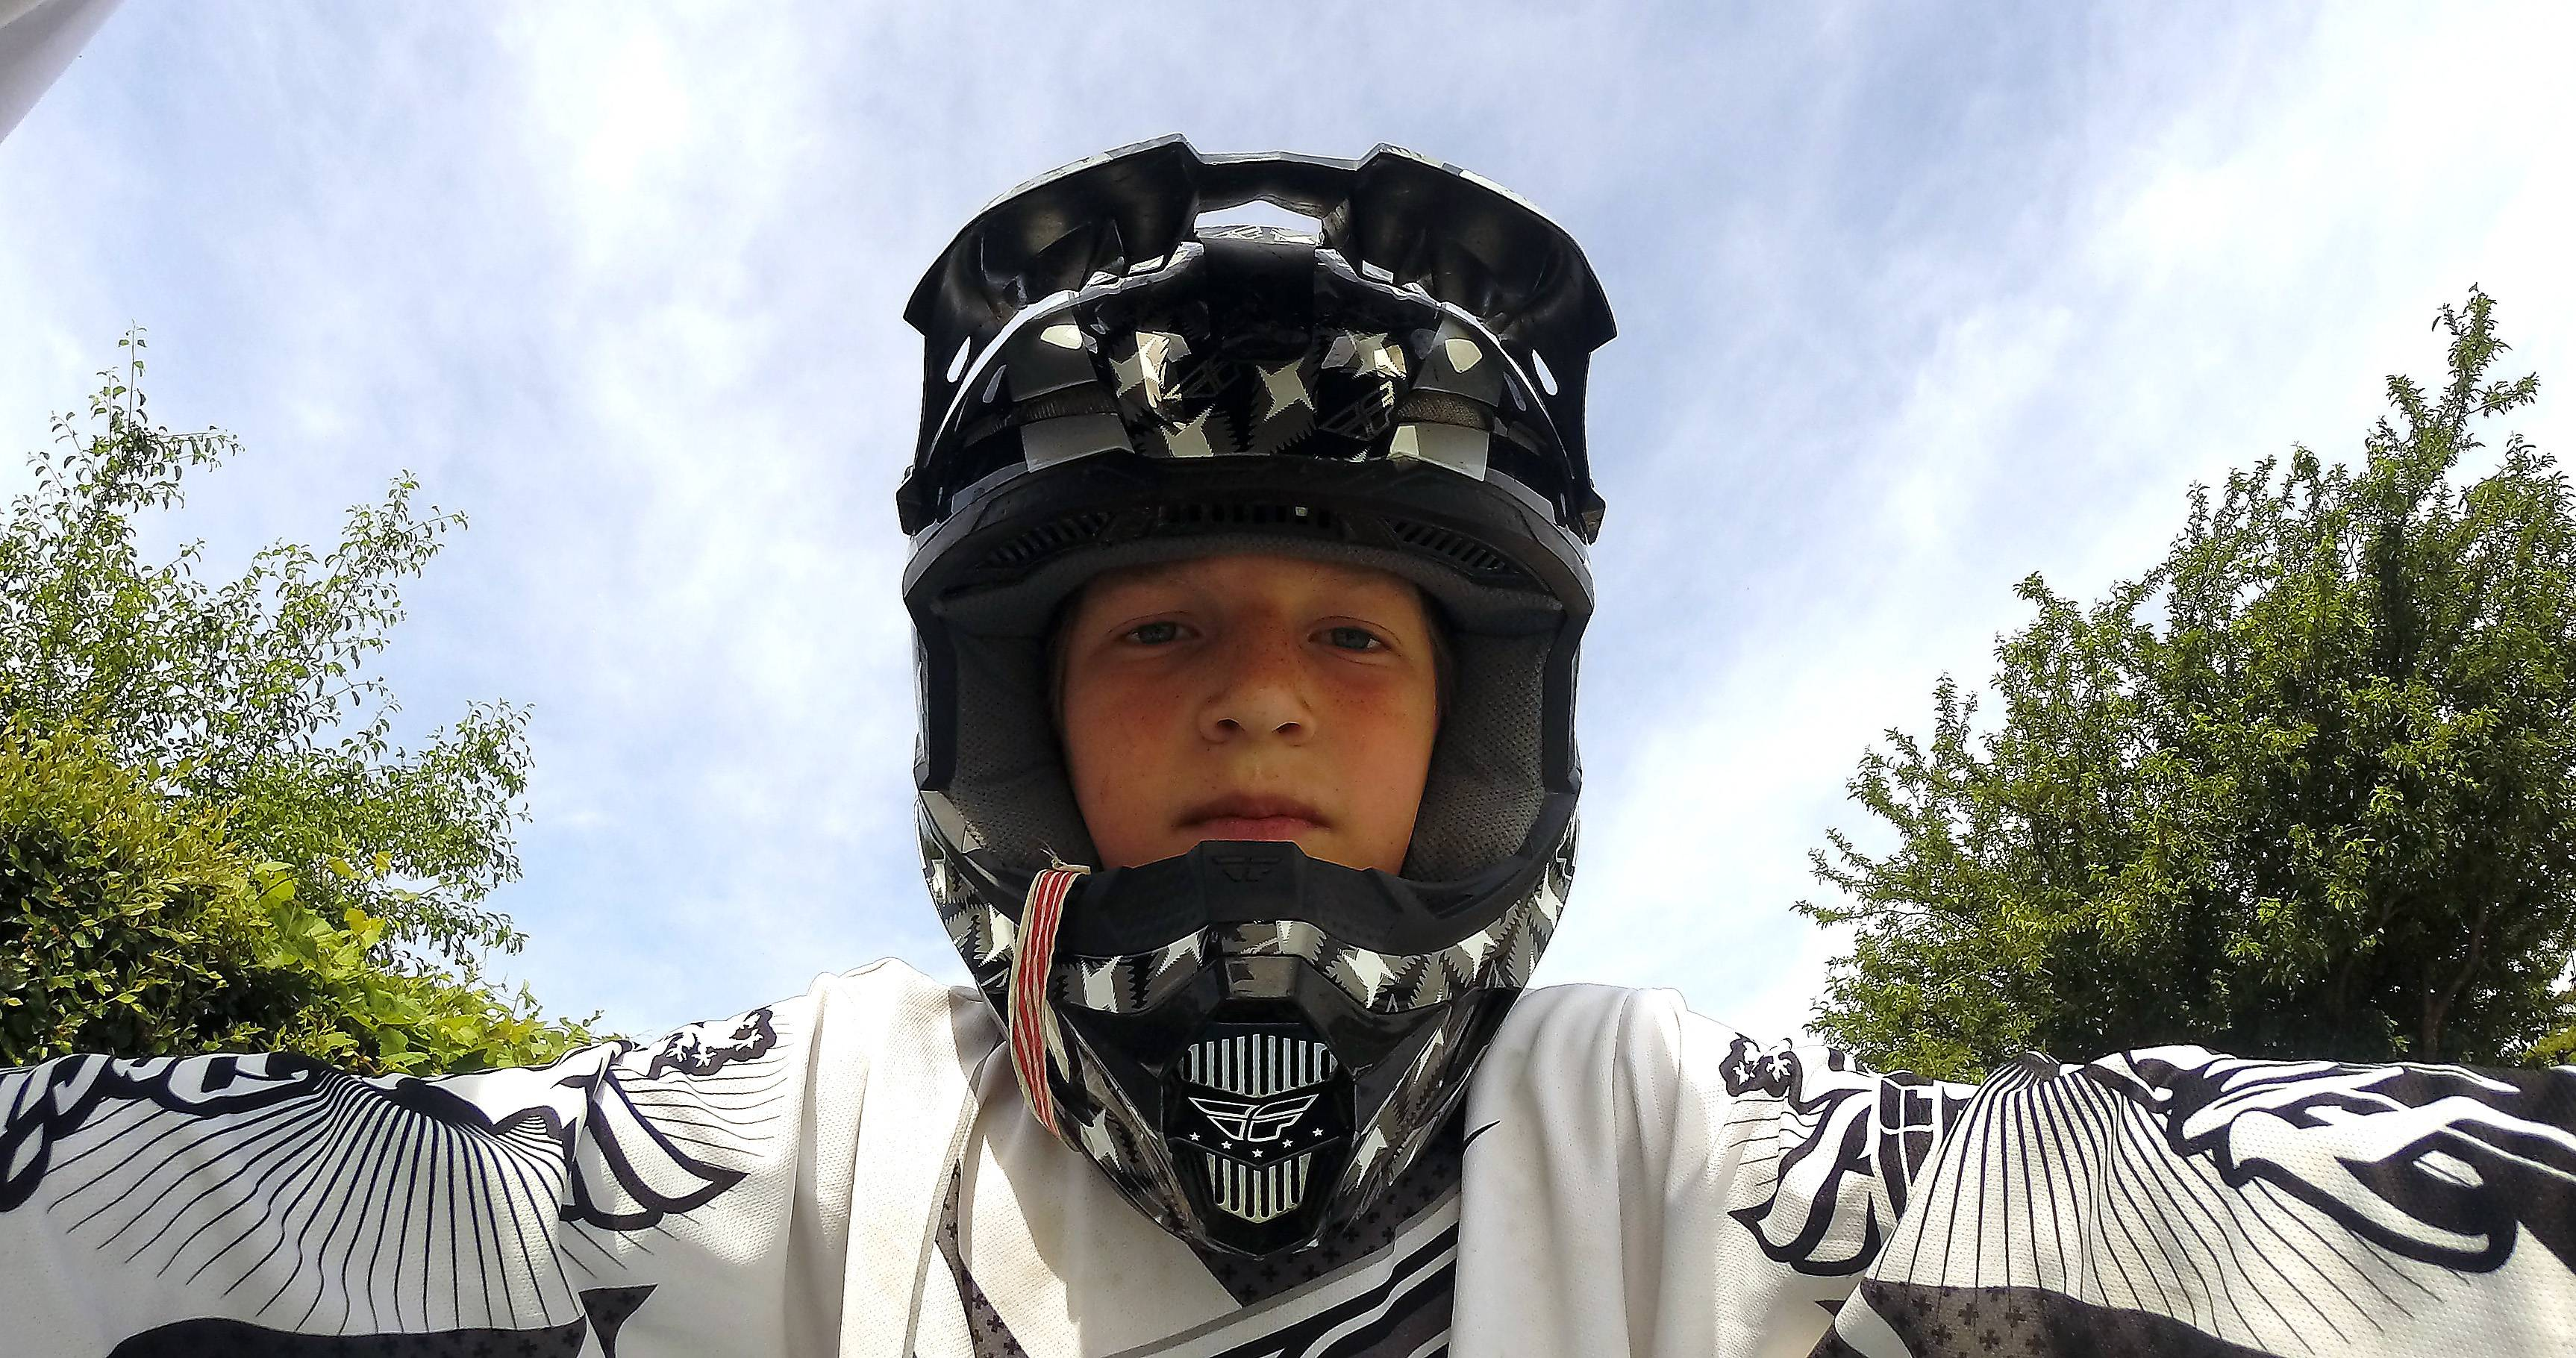 Luke Barton of Belvidere gets ready to roll at the BMX track at the Elgin Sports Complex on a recent Saturday. New track operators Jim and Jenna Barton of Belvidere took over in the fall.